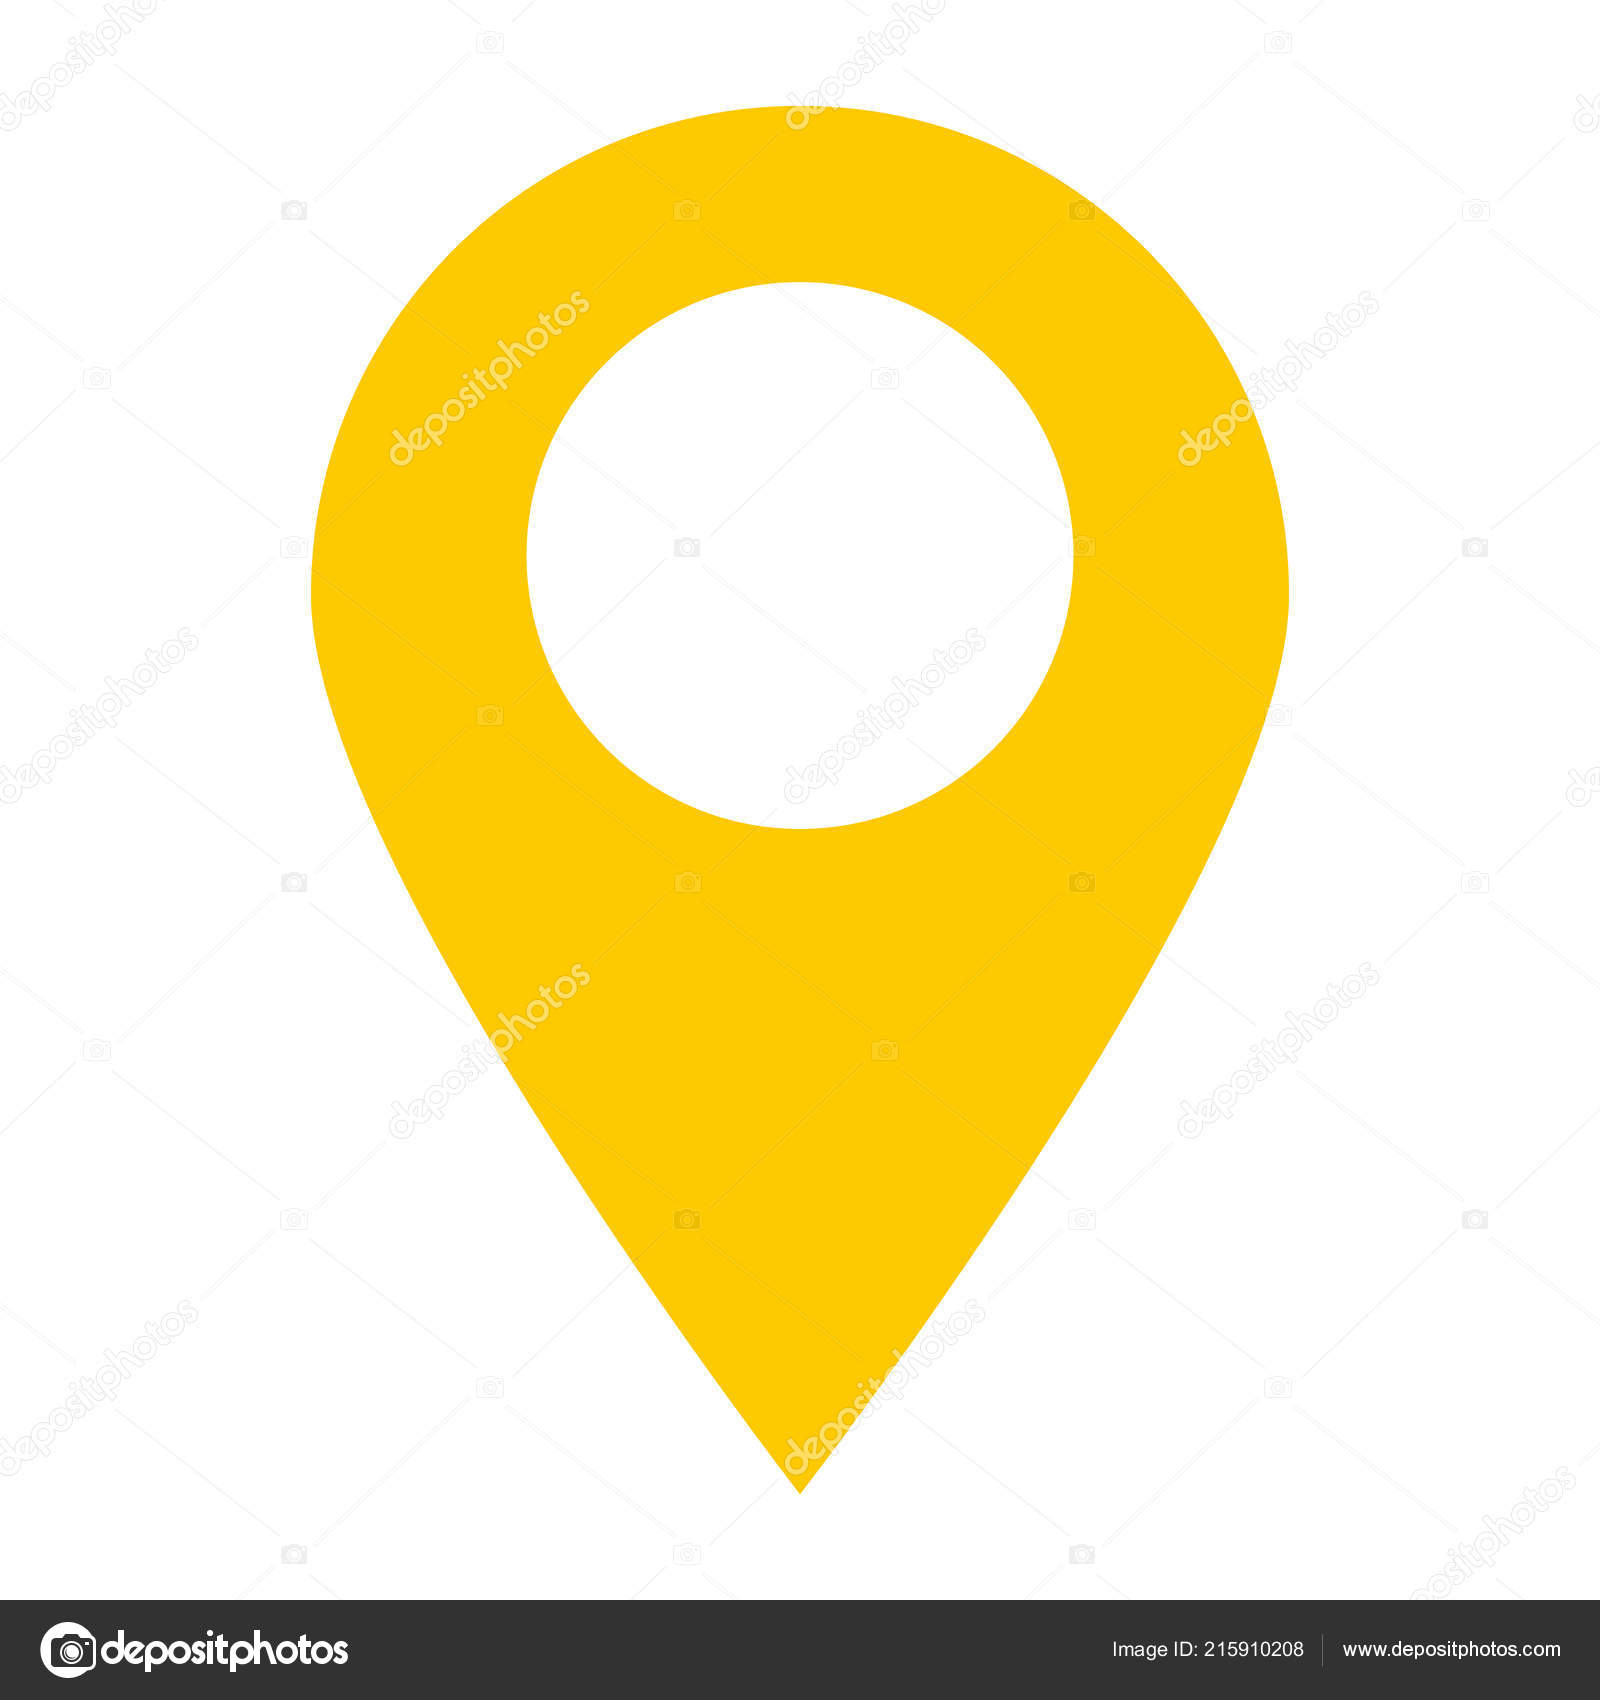 Location Pin Icon White Background Location Pin Point Flat